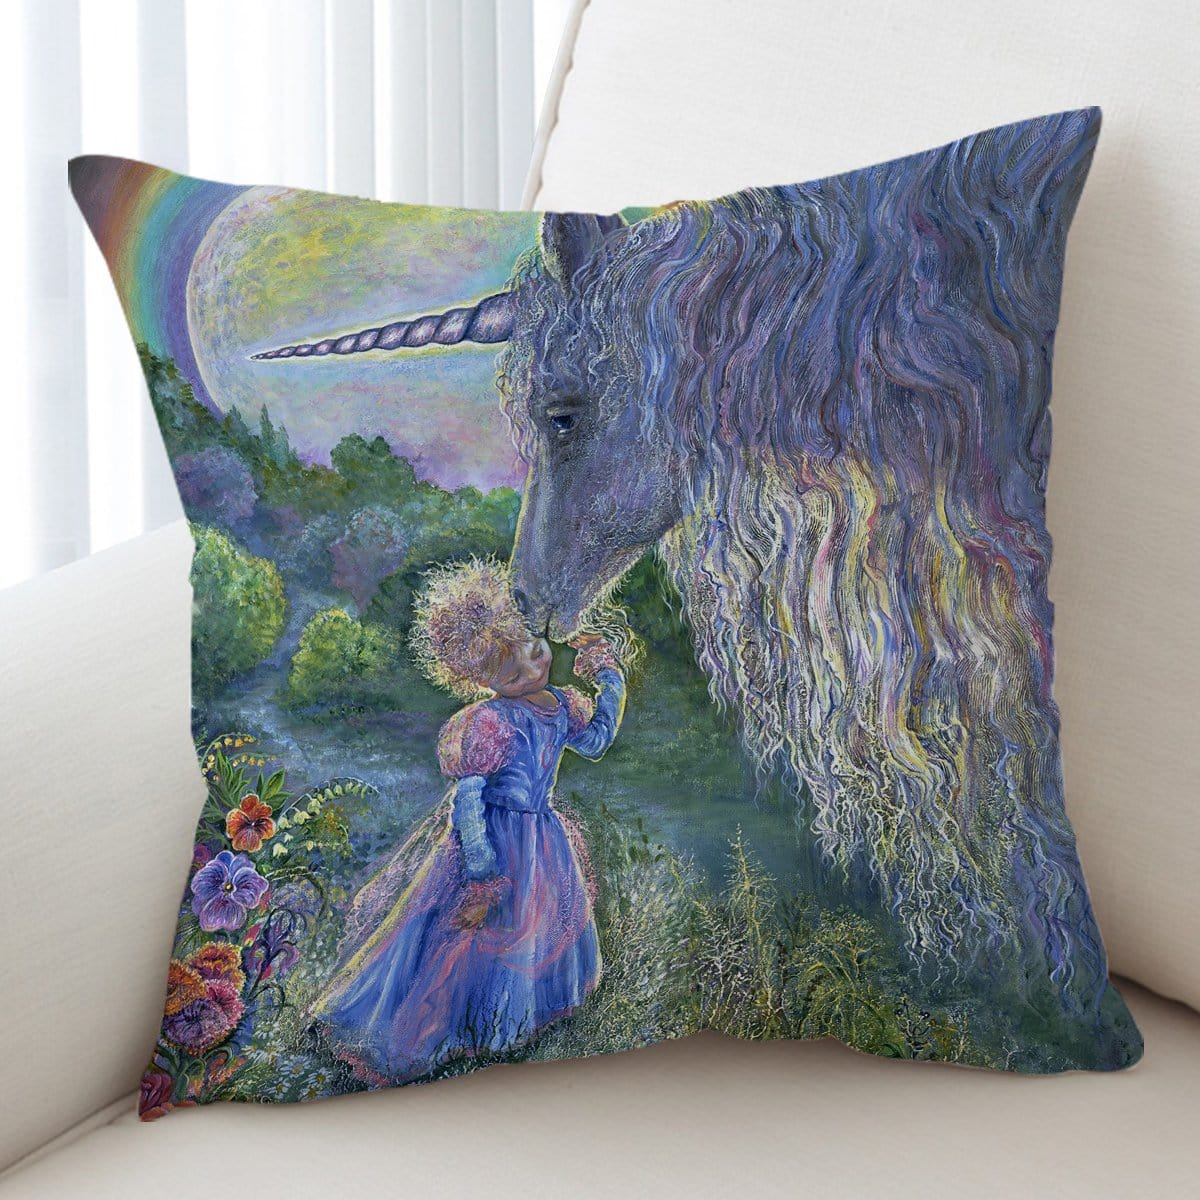 Unicorn Kiss Cushion Cover-Josephine Wall-Little Squiffy